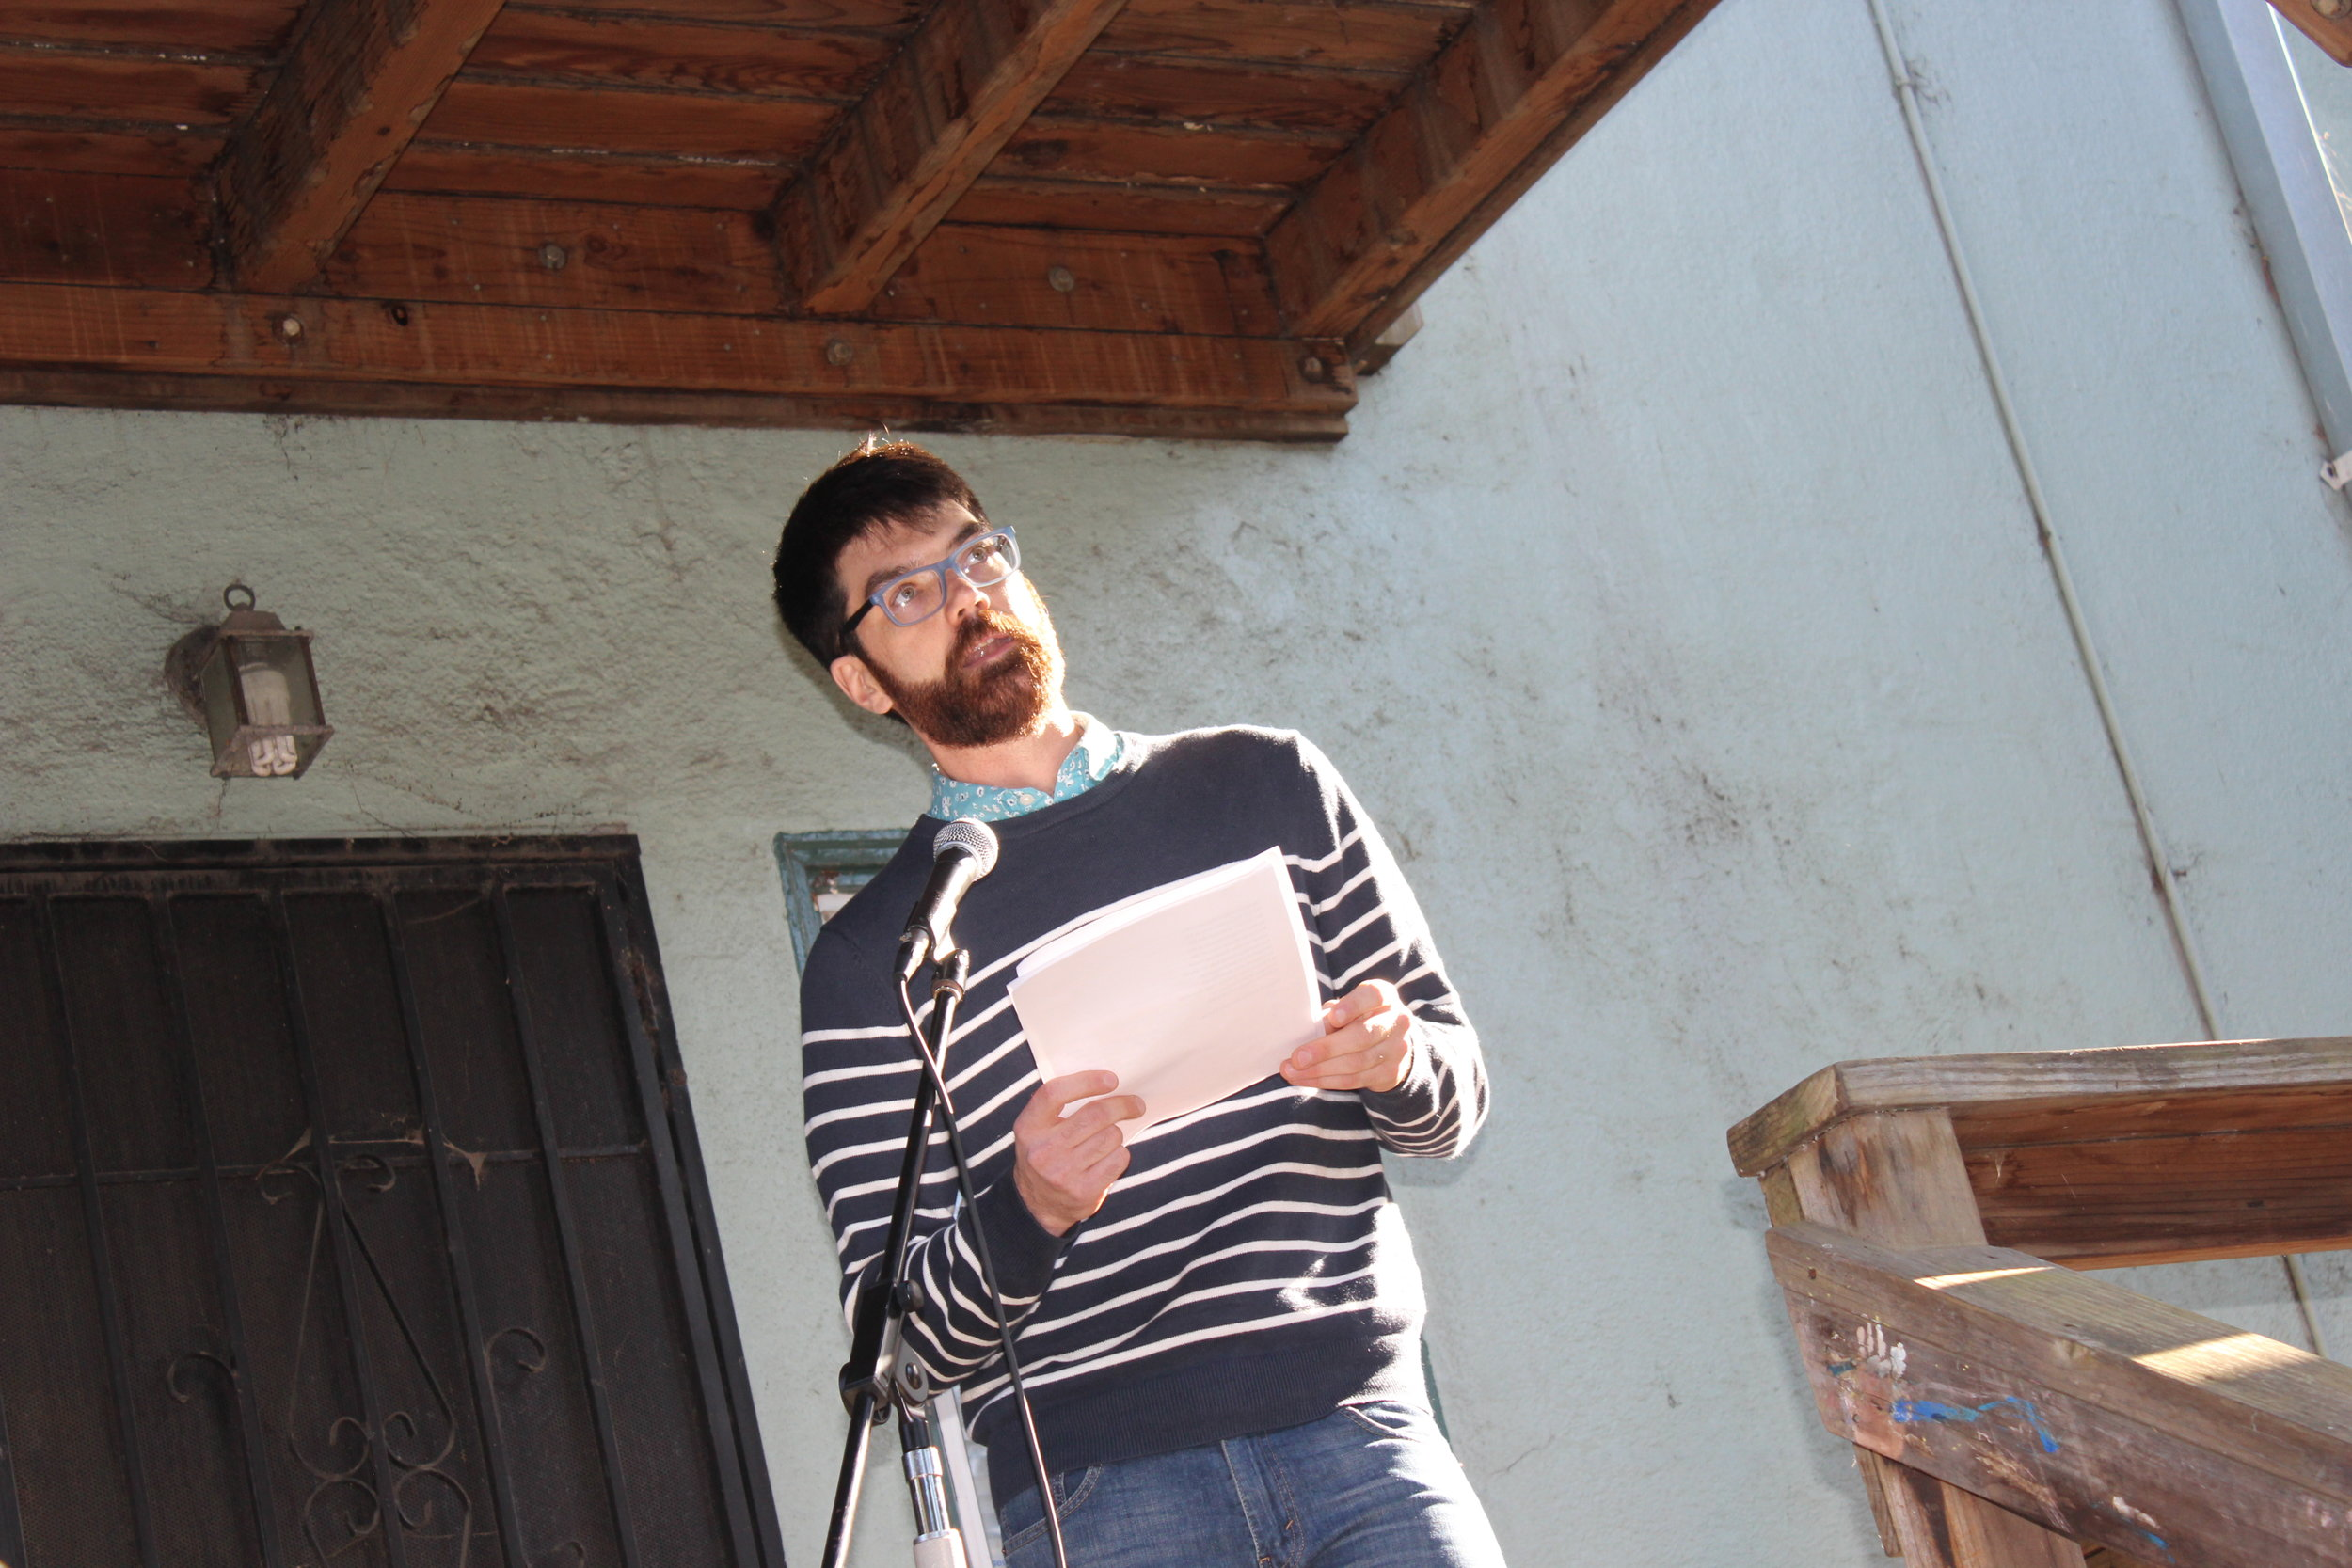 Liam Curley reads on June 1st 2019 in the Oak Center Neighborhood of West Oakland